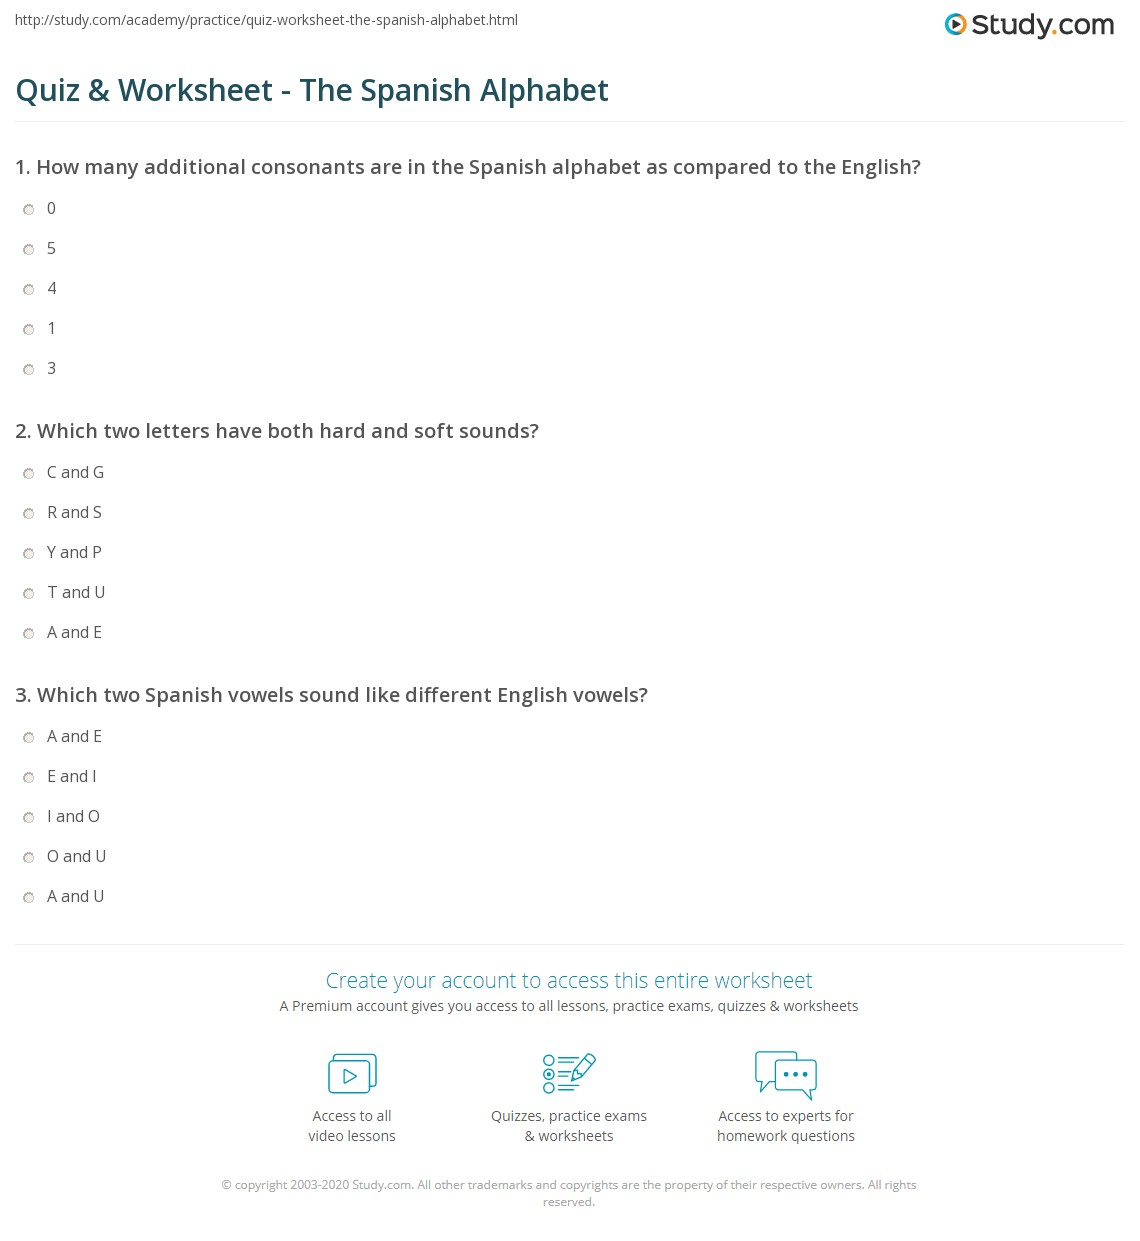 Answers For Homework Vpk